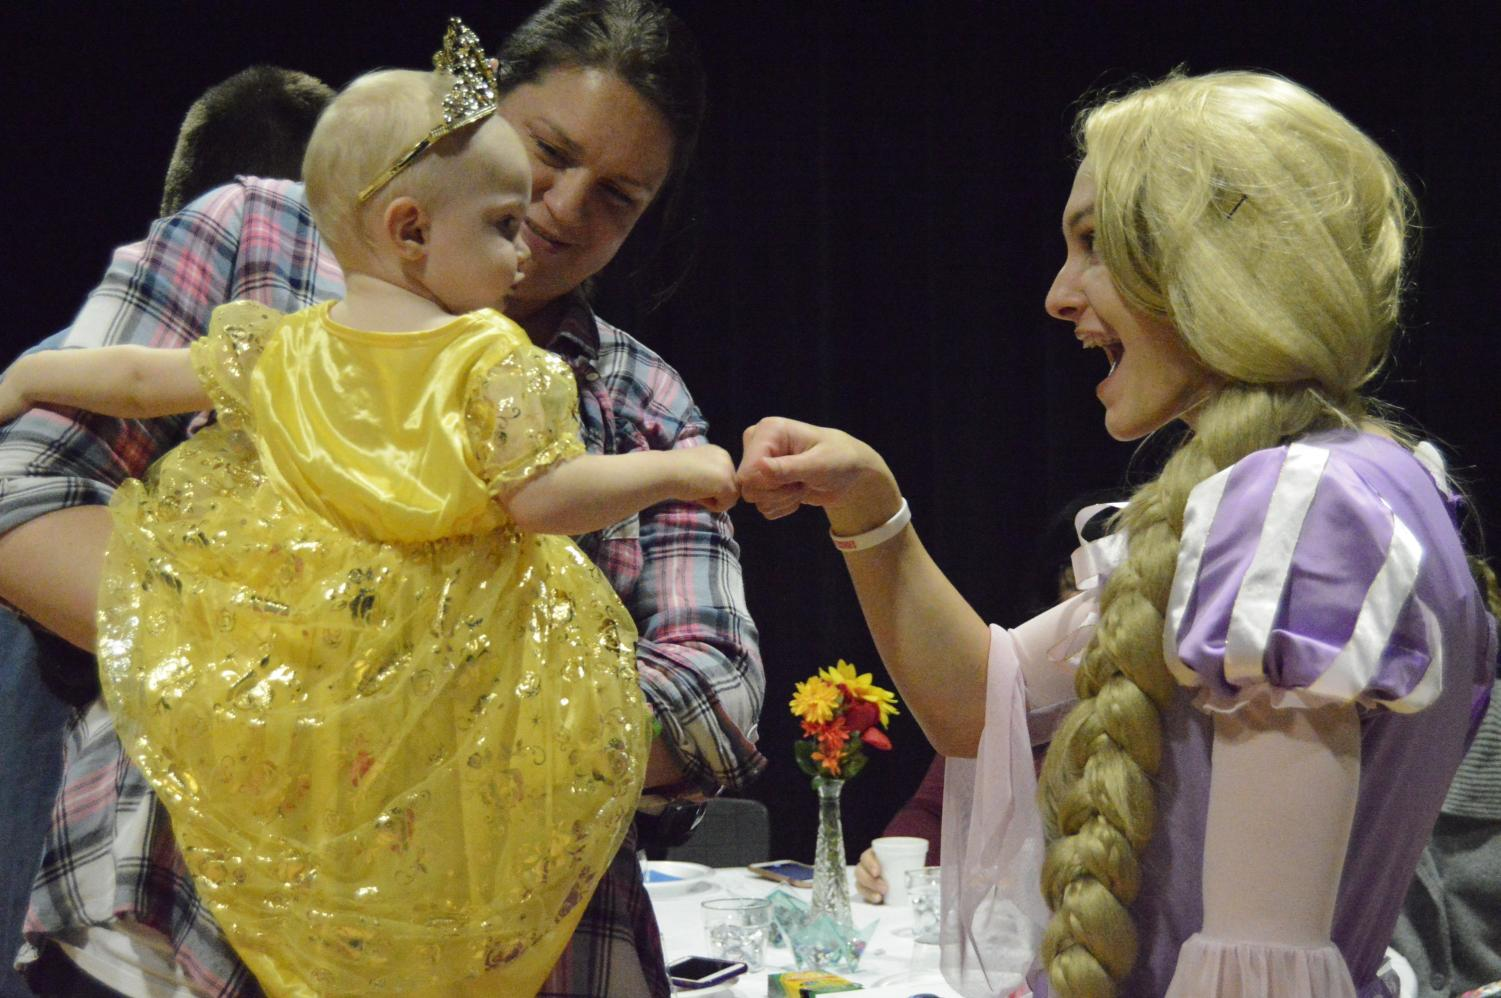 Senior Jordan Cox fist bumps with a child who attended Tea With A Princess. Cox was dressed and portraying the role of the Disney princess Rapunzel.